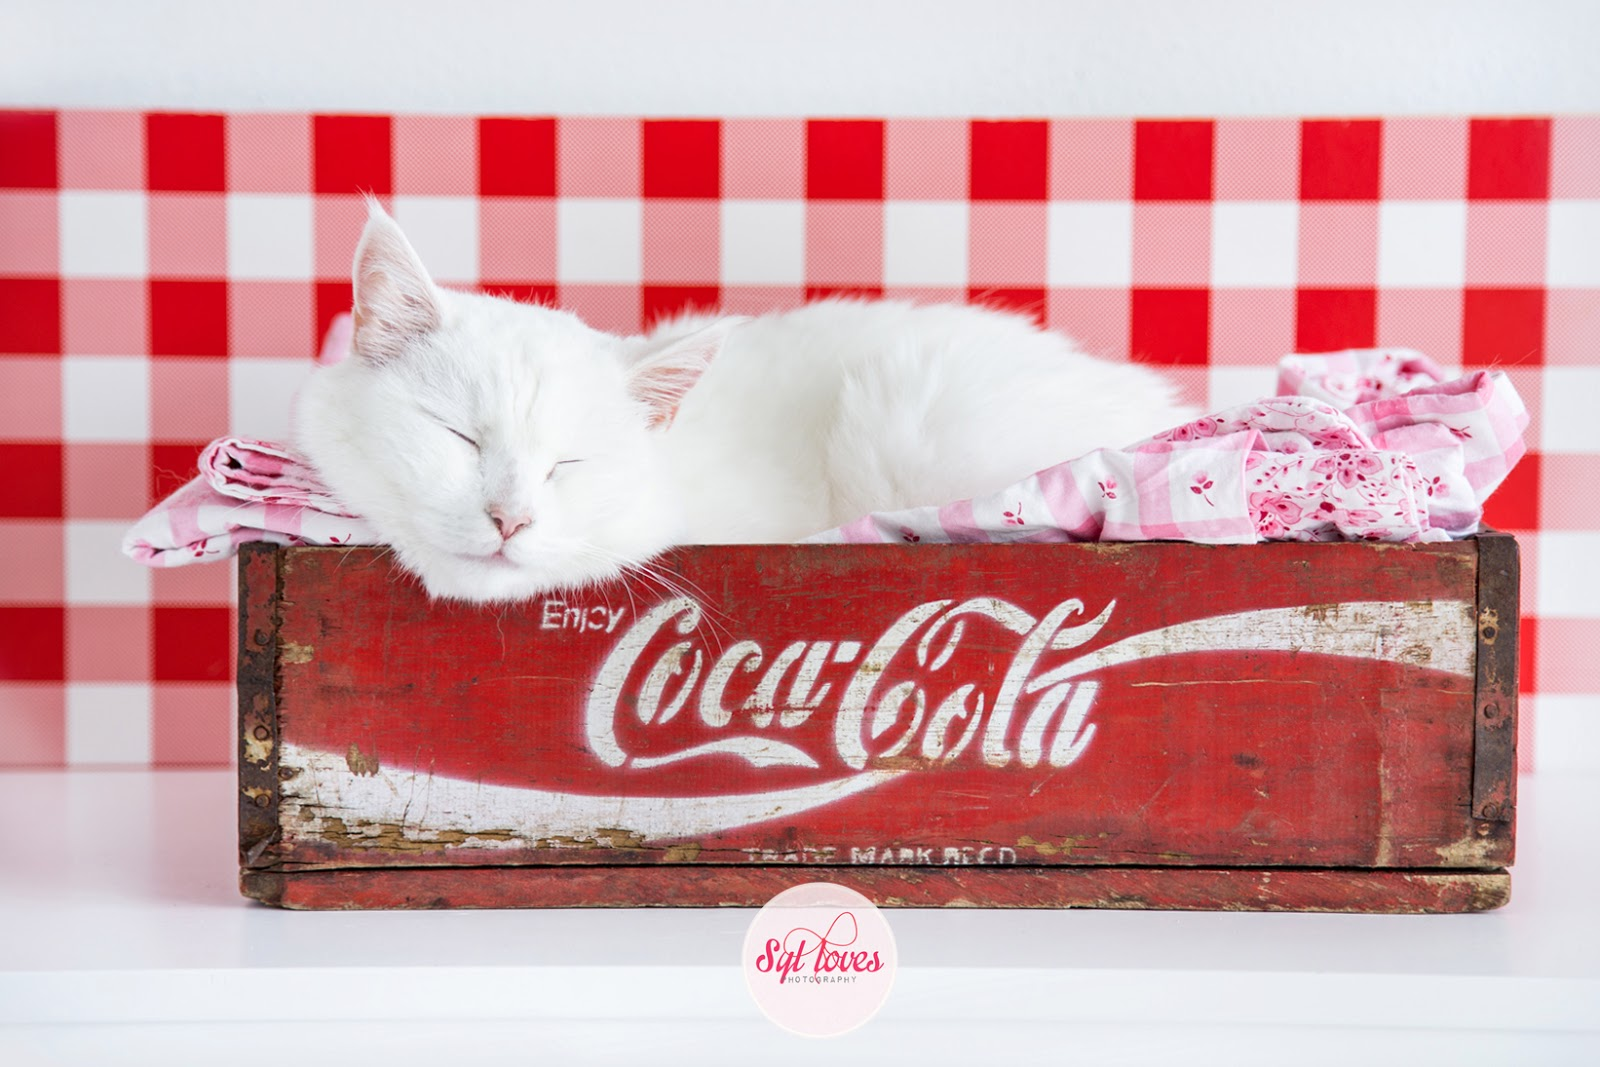 Syl loves, Mr.Blue, Coca Cola, Gingham